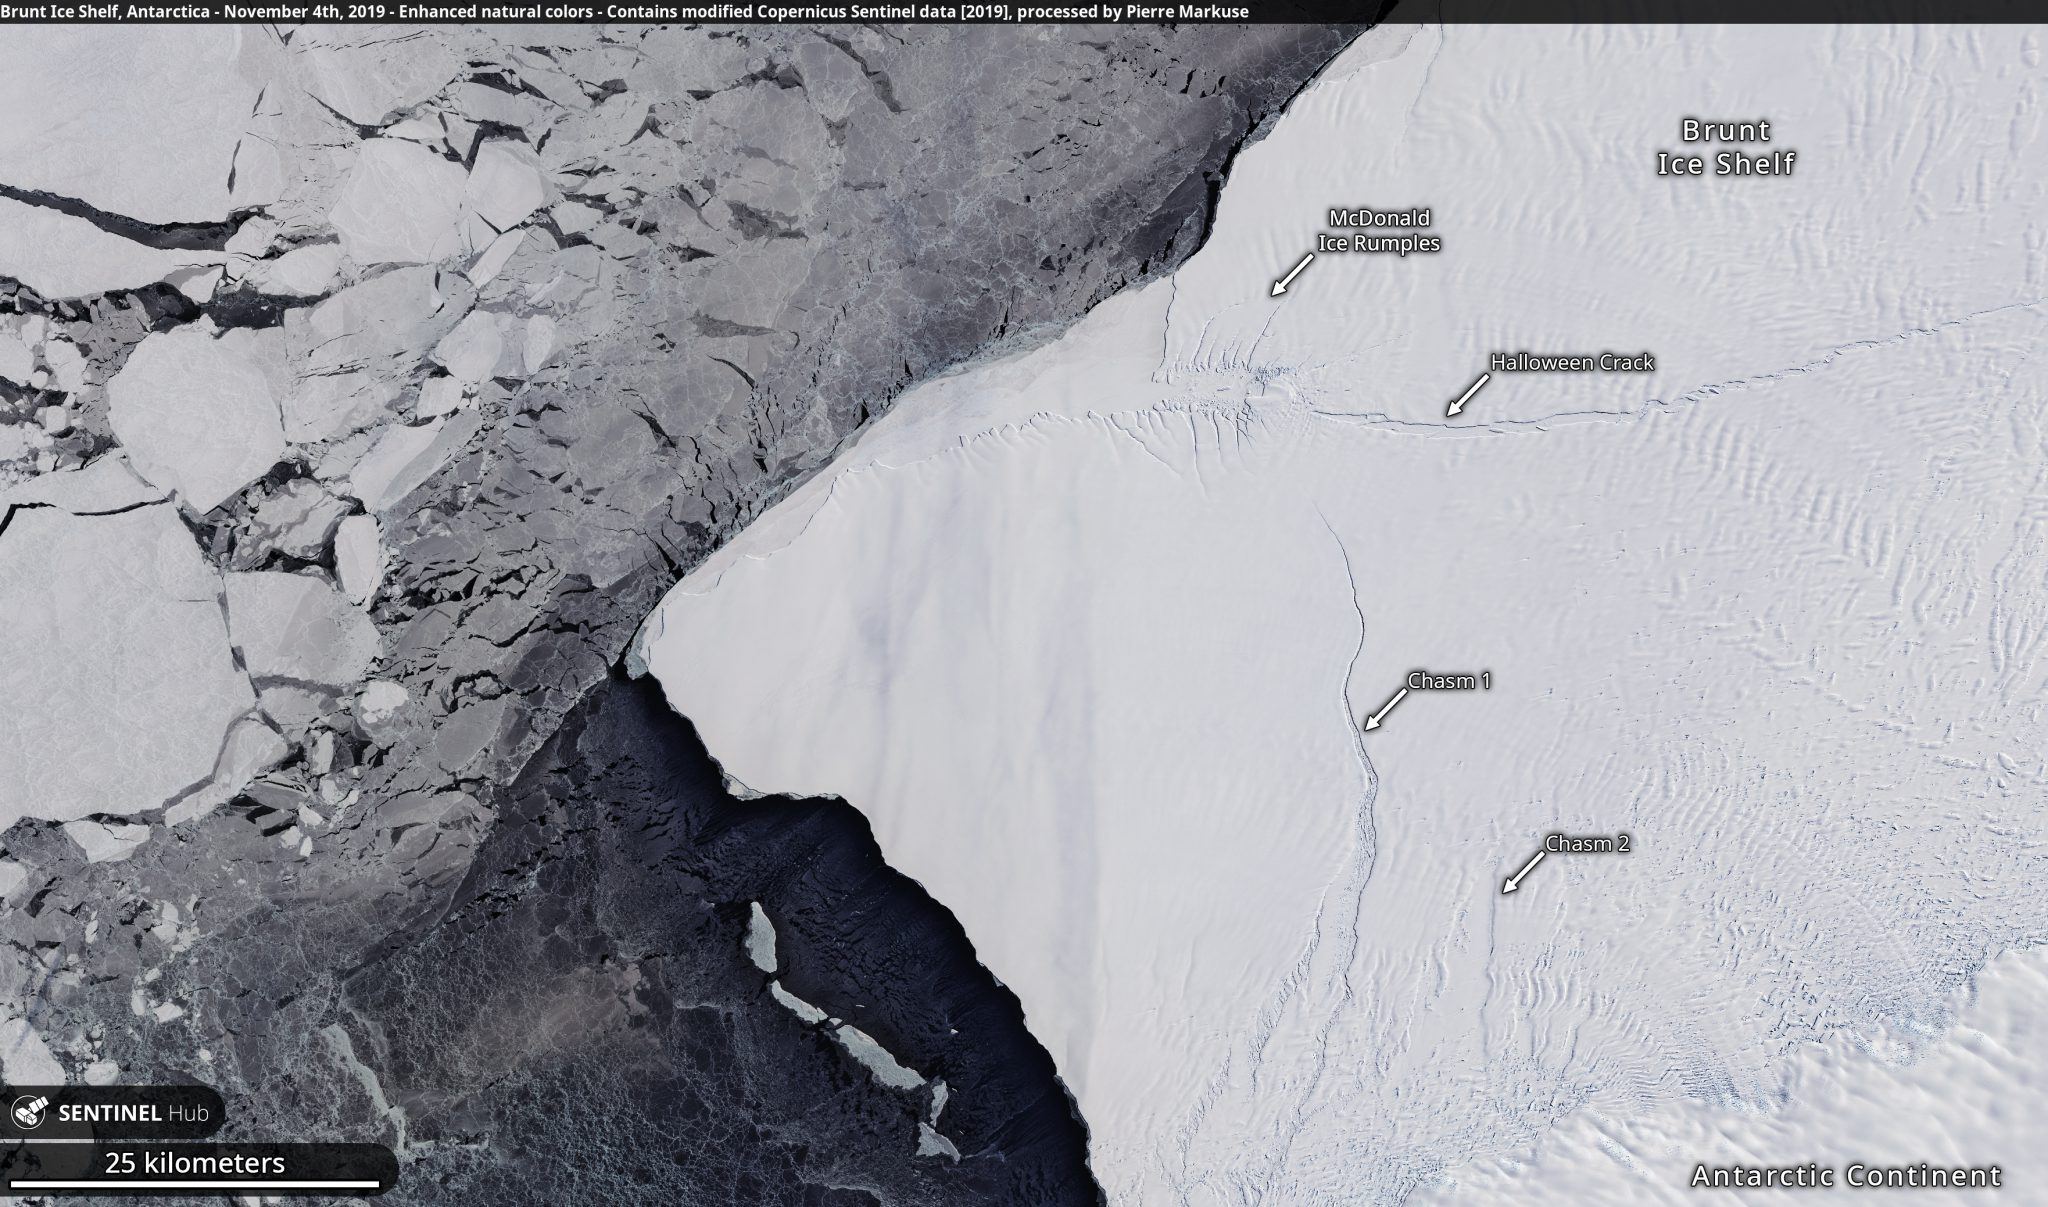 desc:Brunt Ice Shelf, Antarctica - November 4th, 2019 Copernicus/Pierre Markuse